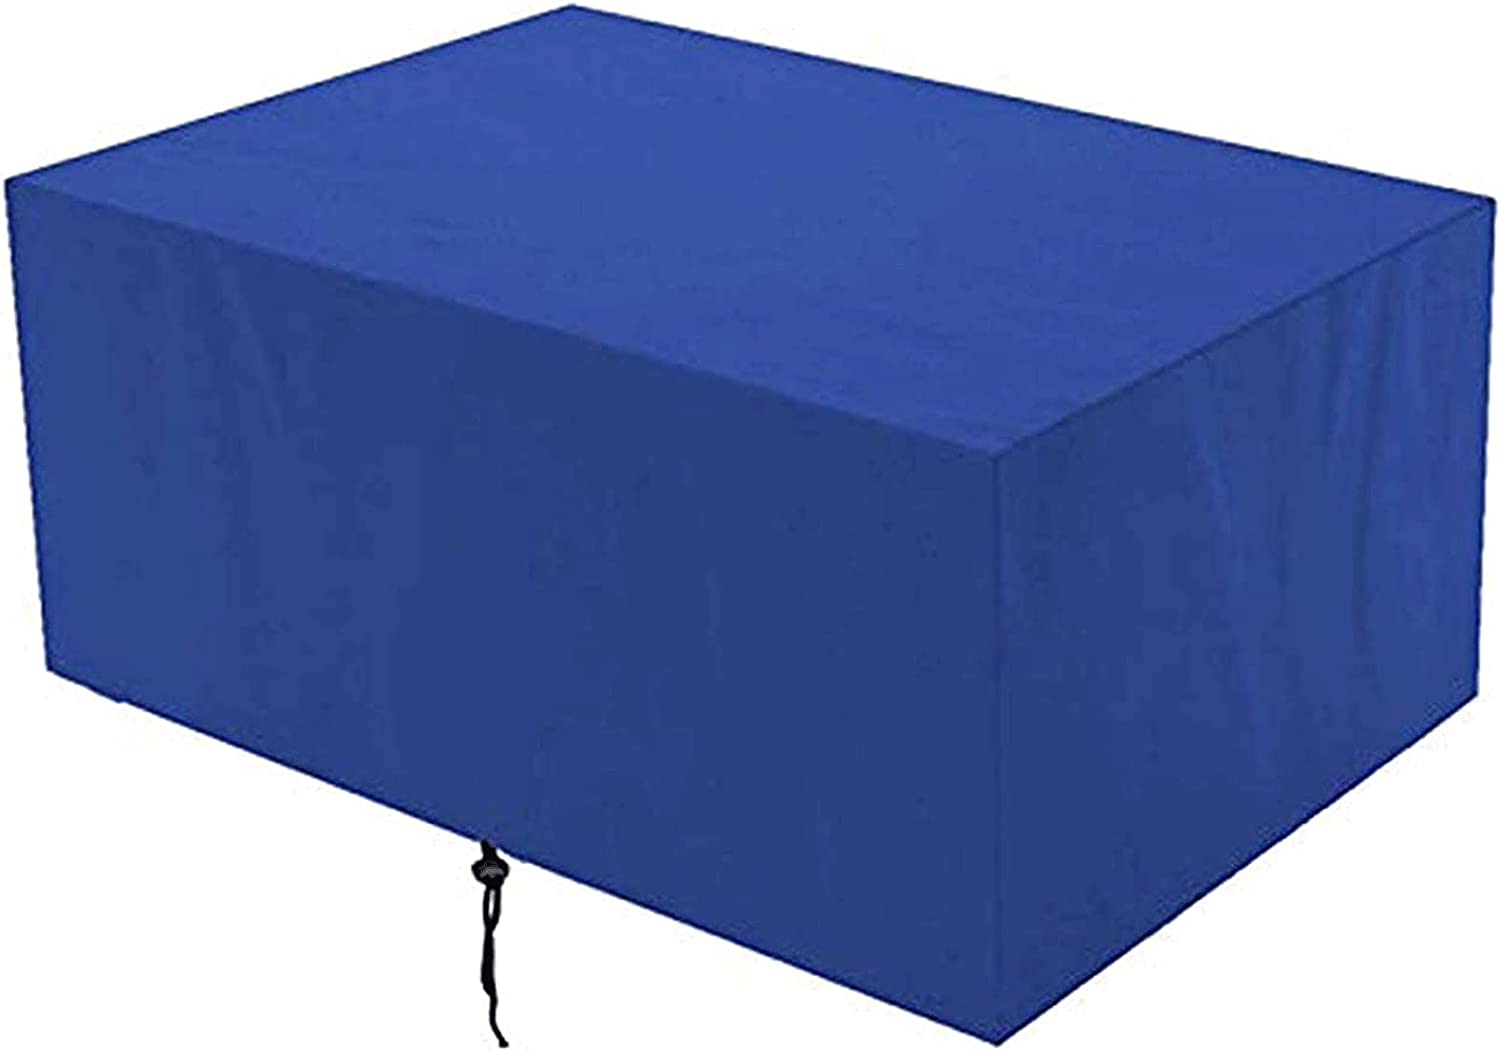 Garden Furniture Covers Branded goods Waterproof Prot Cover Quality inspection Outdoor